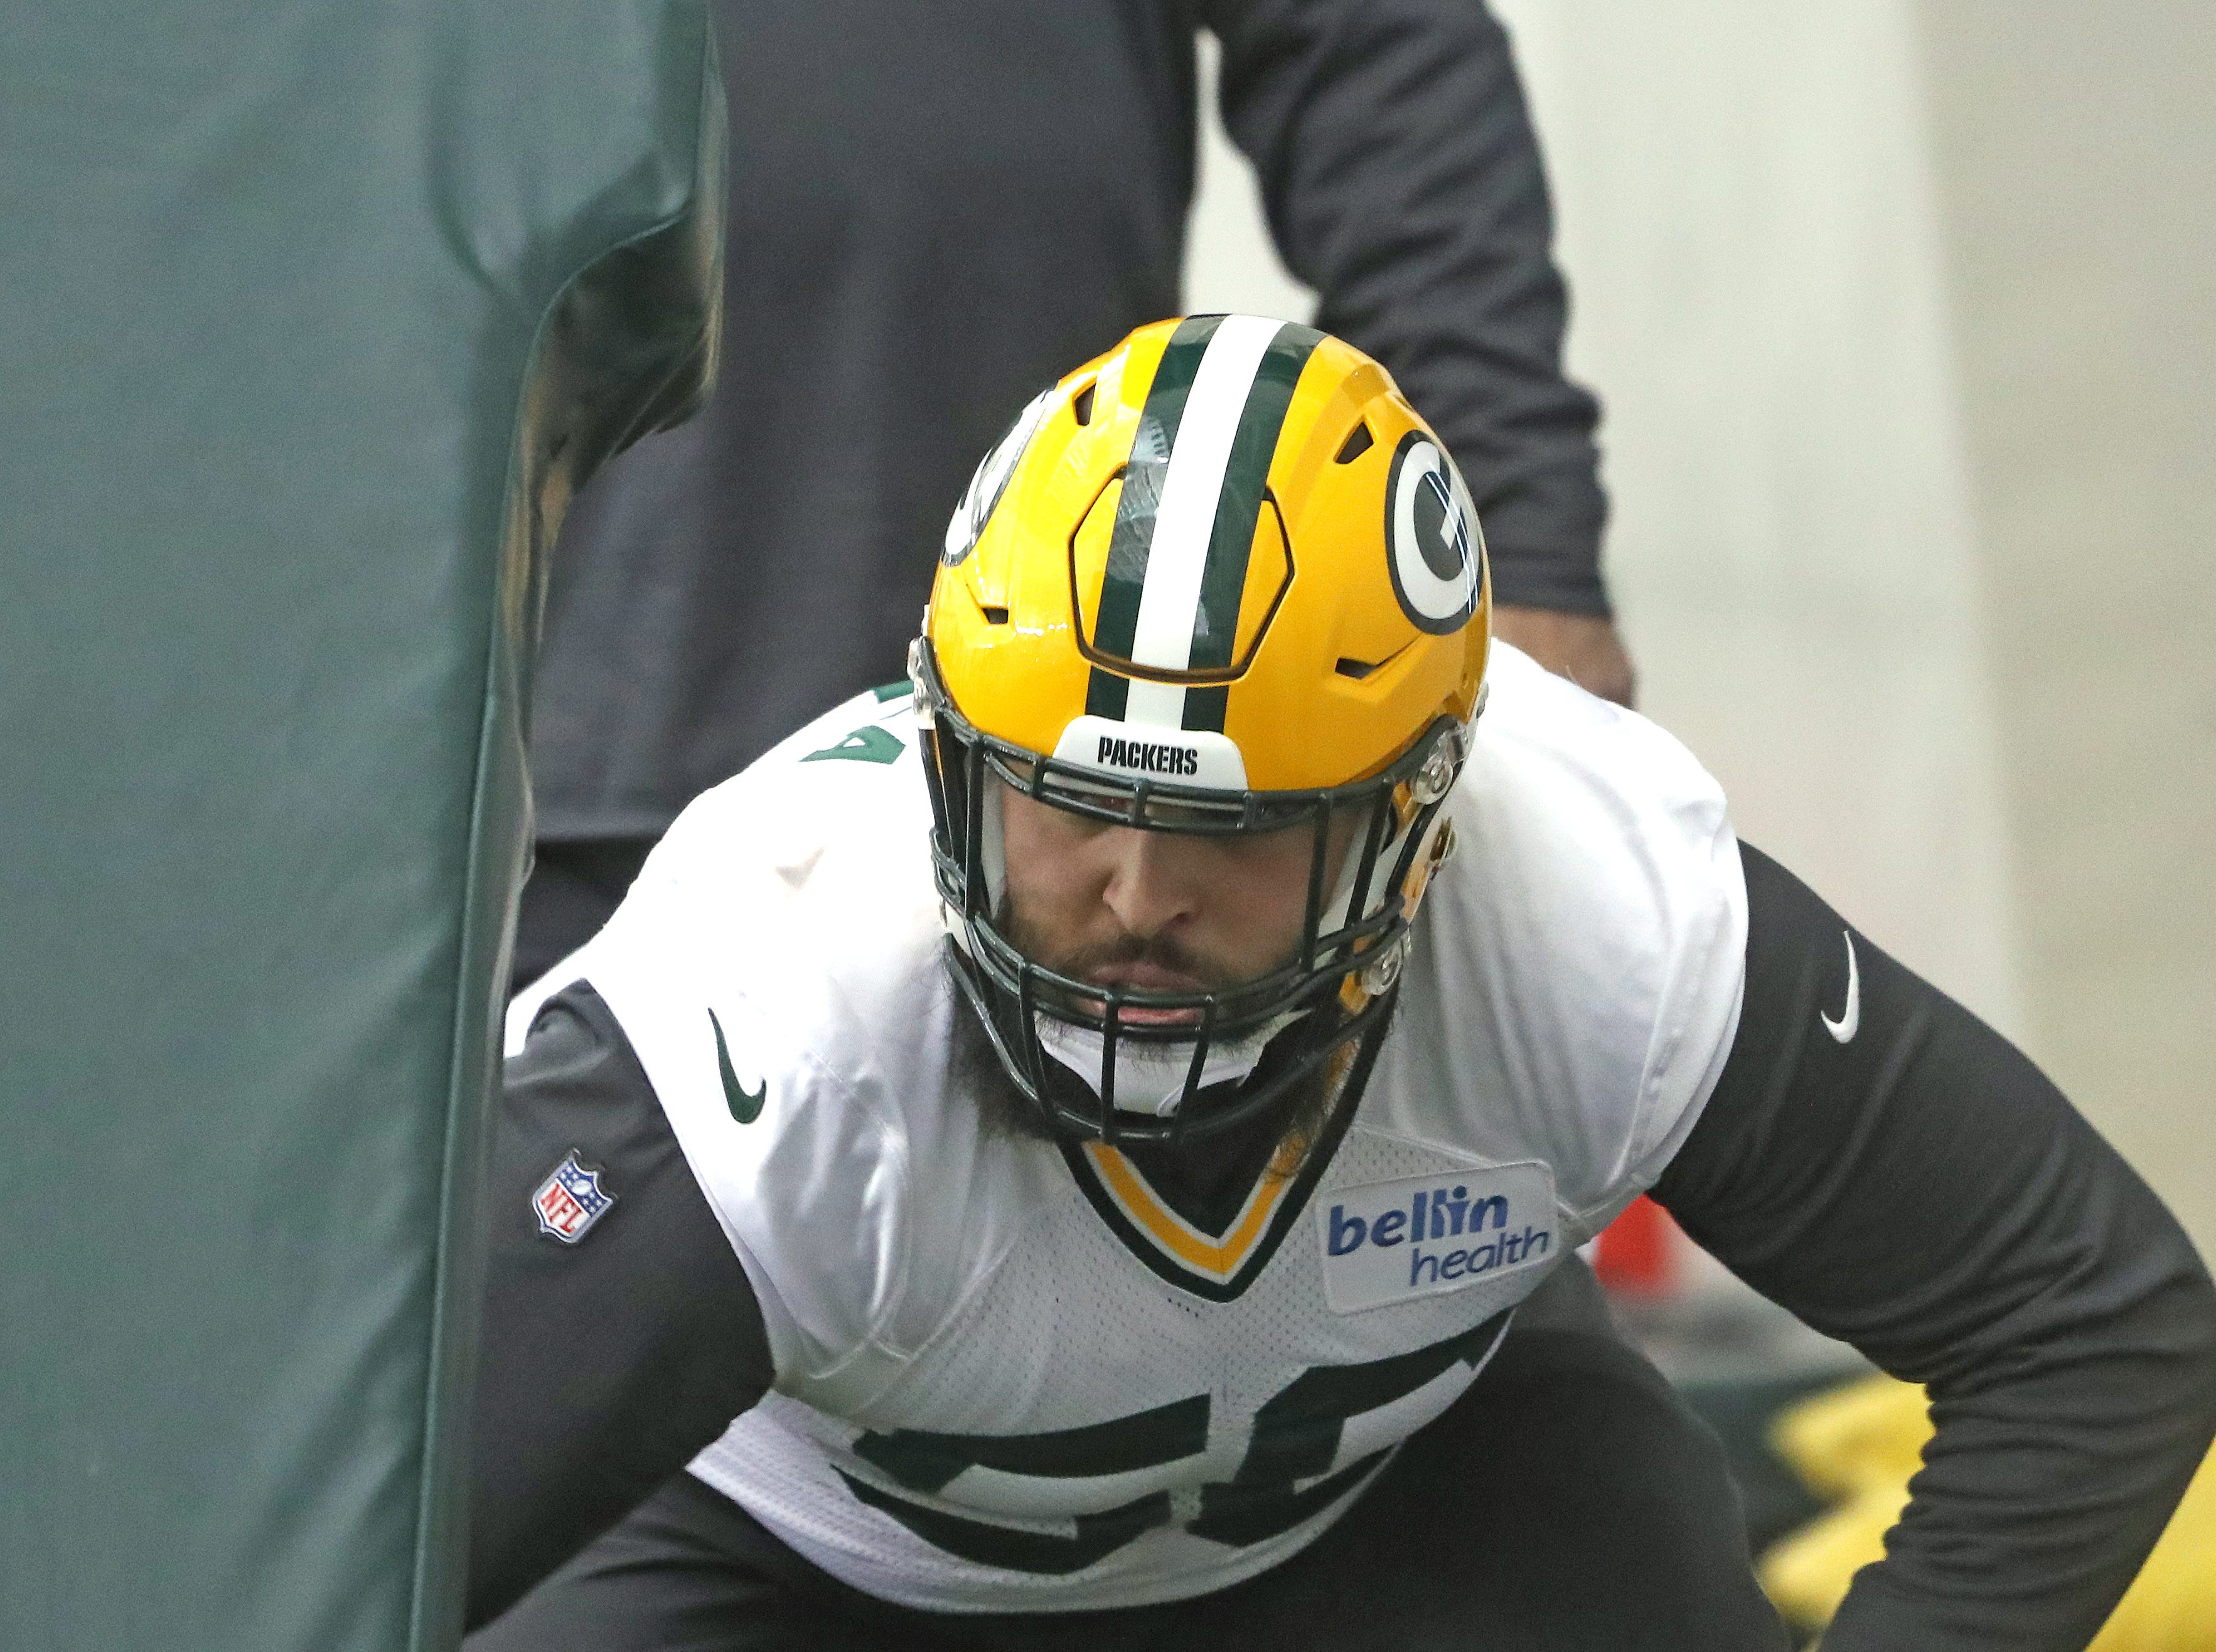 Green Bay Packers newly signed offensive guard Nico Siragusa during practice Wednesday, December 12, 2018 in the Don Hutson Center in Ashwaubenon, Wis.